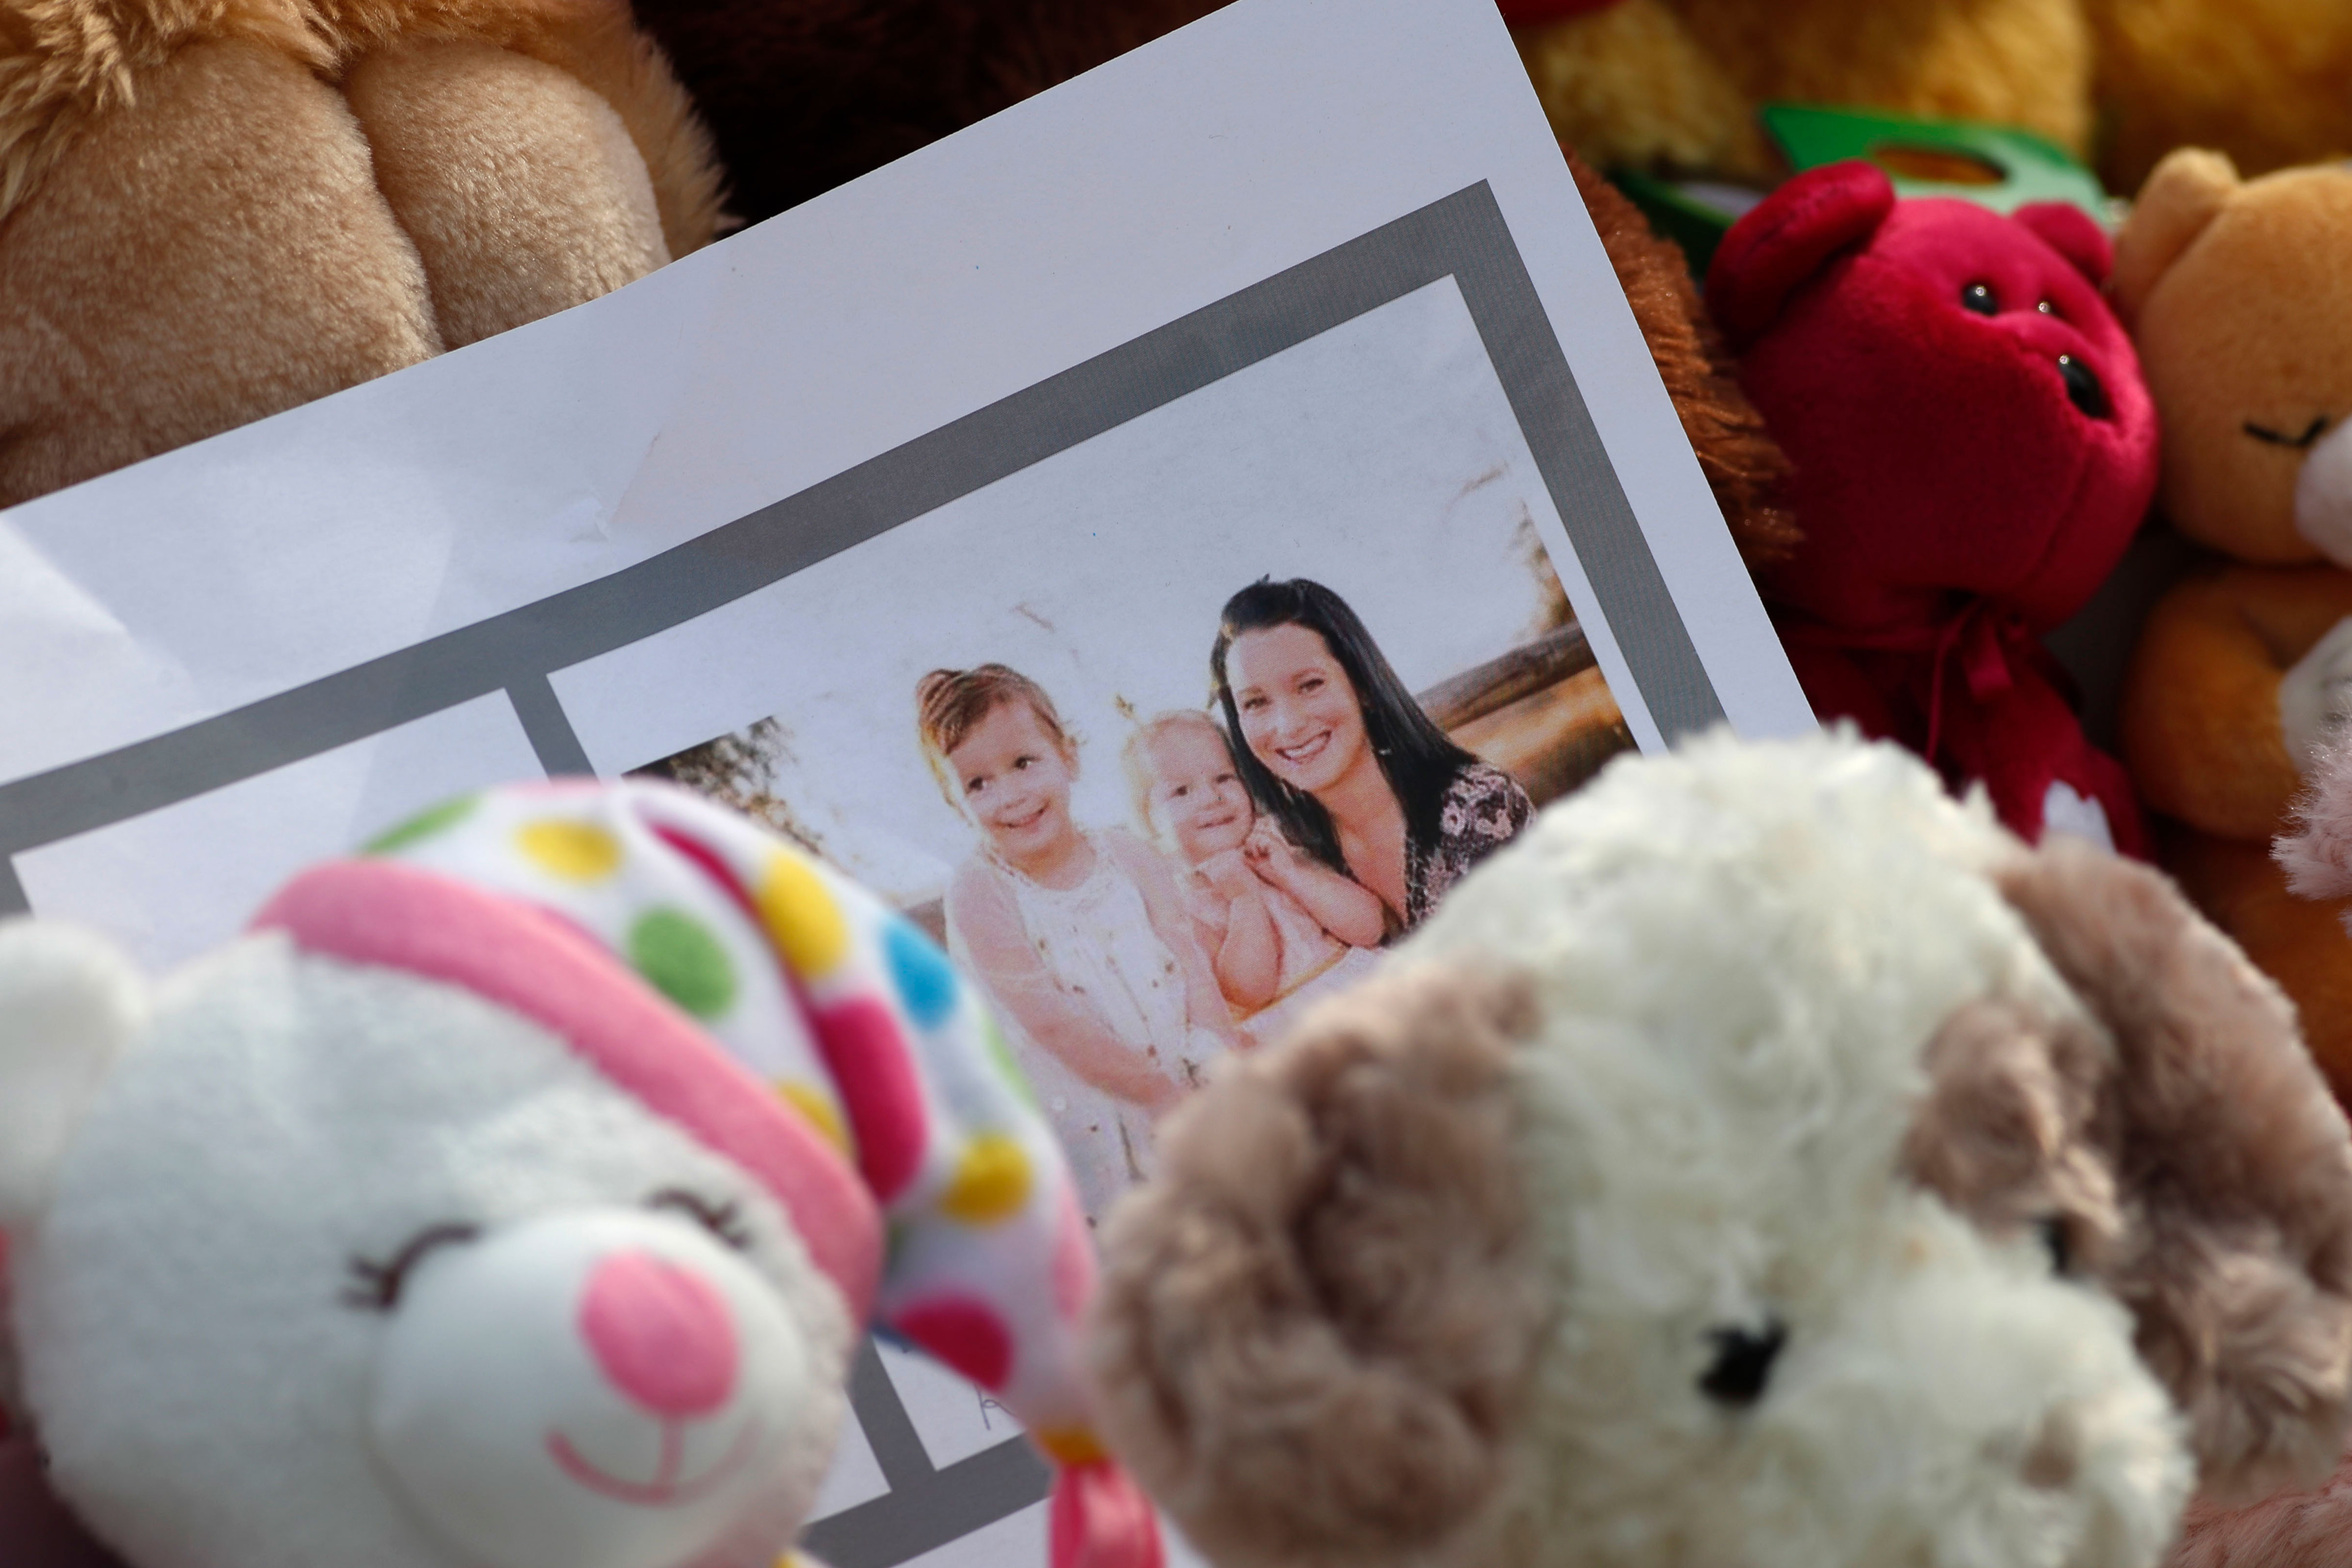 Photo: Chris Shannan Watts Murder Case 6 | Photo Tribute - AP